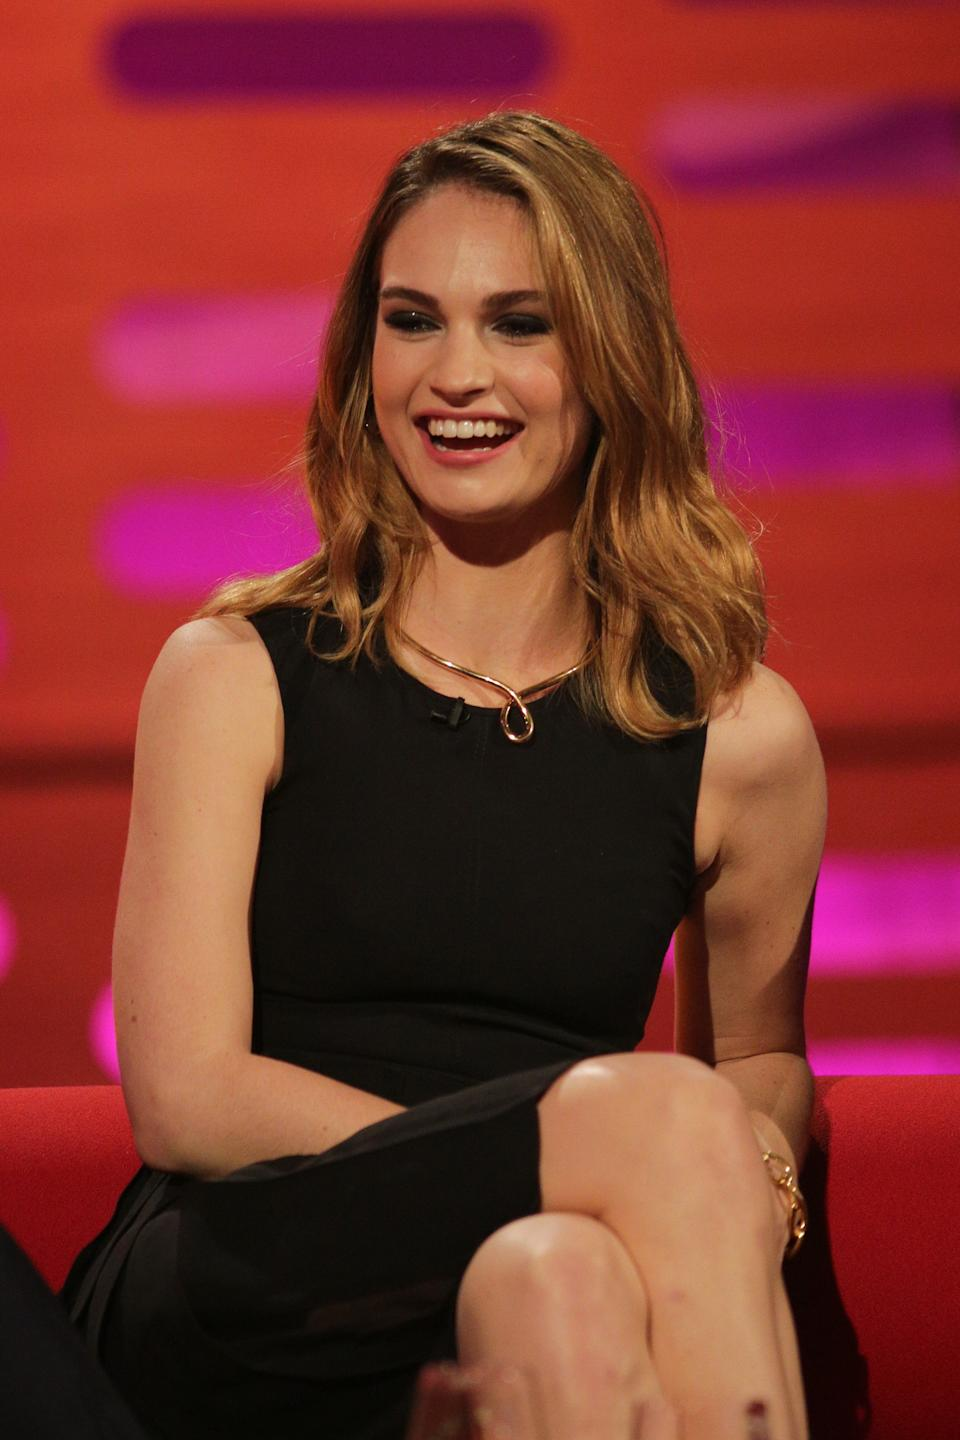 Lily James during the filming of the Graham Norton Show at the London Studios in London, to be broadcast on BBC1 tomorrow.